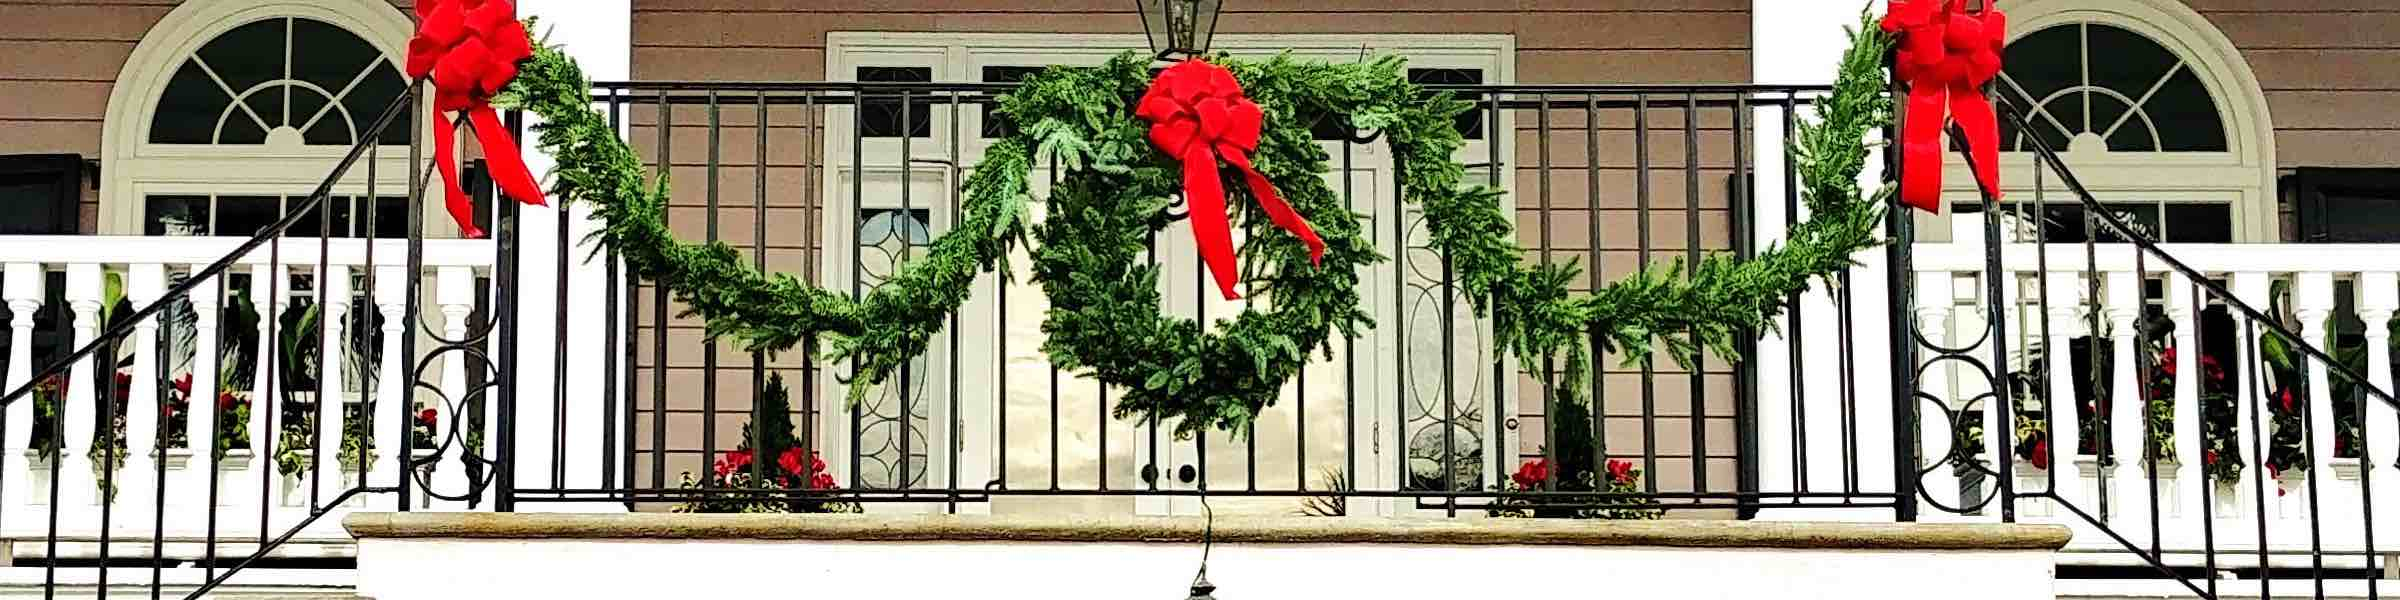 Holiday decorations on a Charleston home.